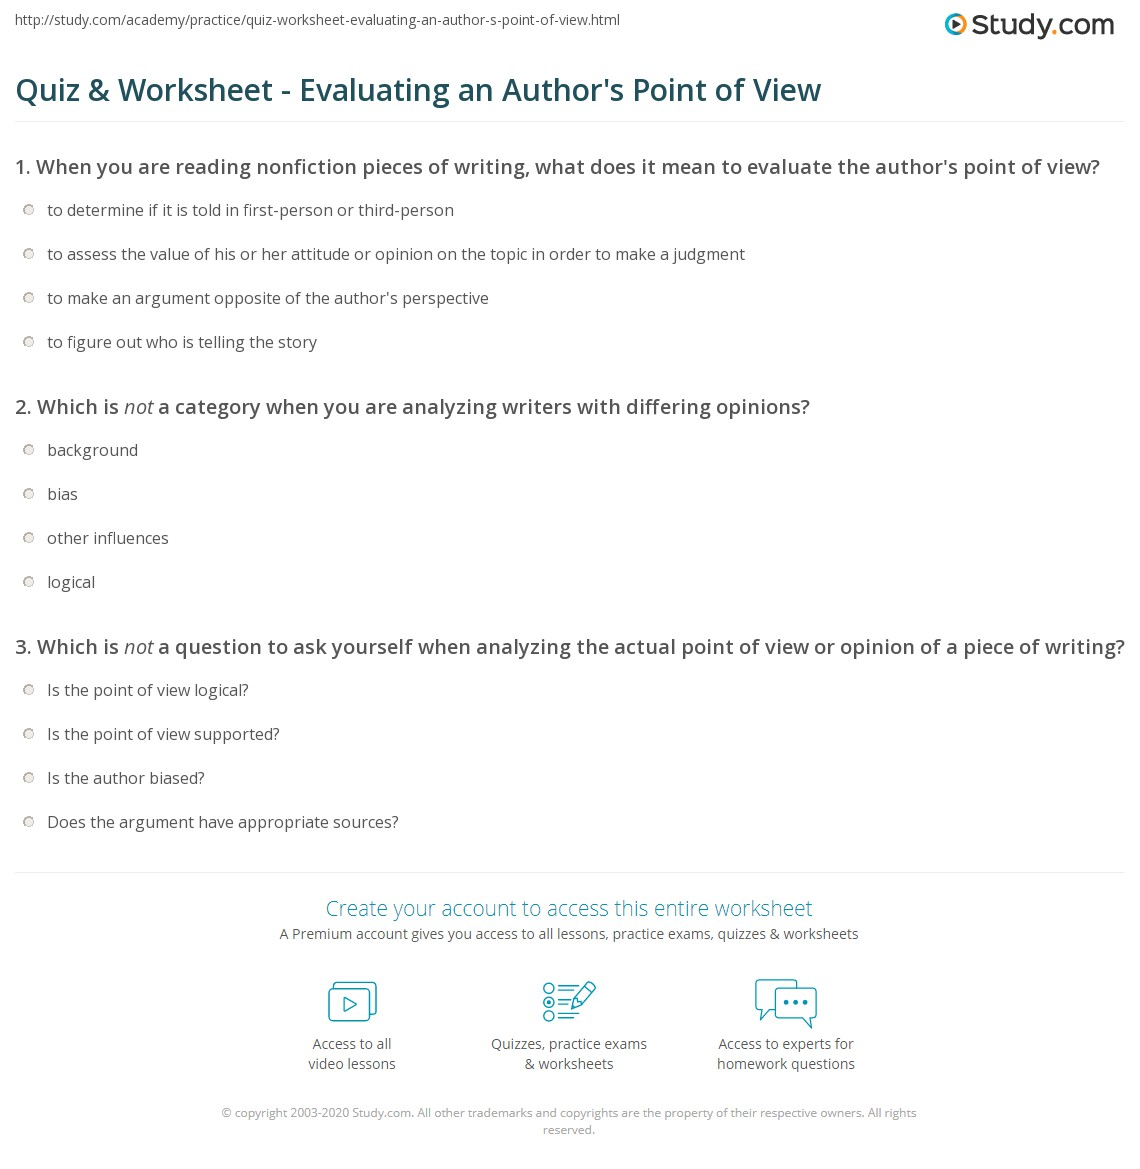 Quiz & Worksheet - Evaluating an Author's Point of View | Study.com